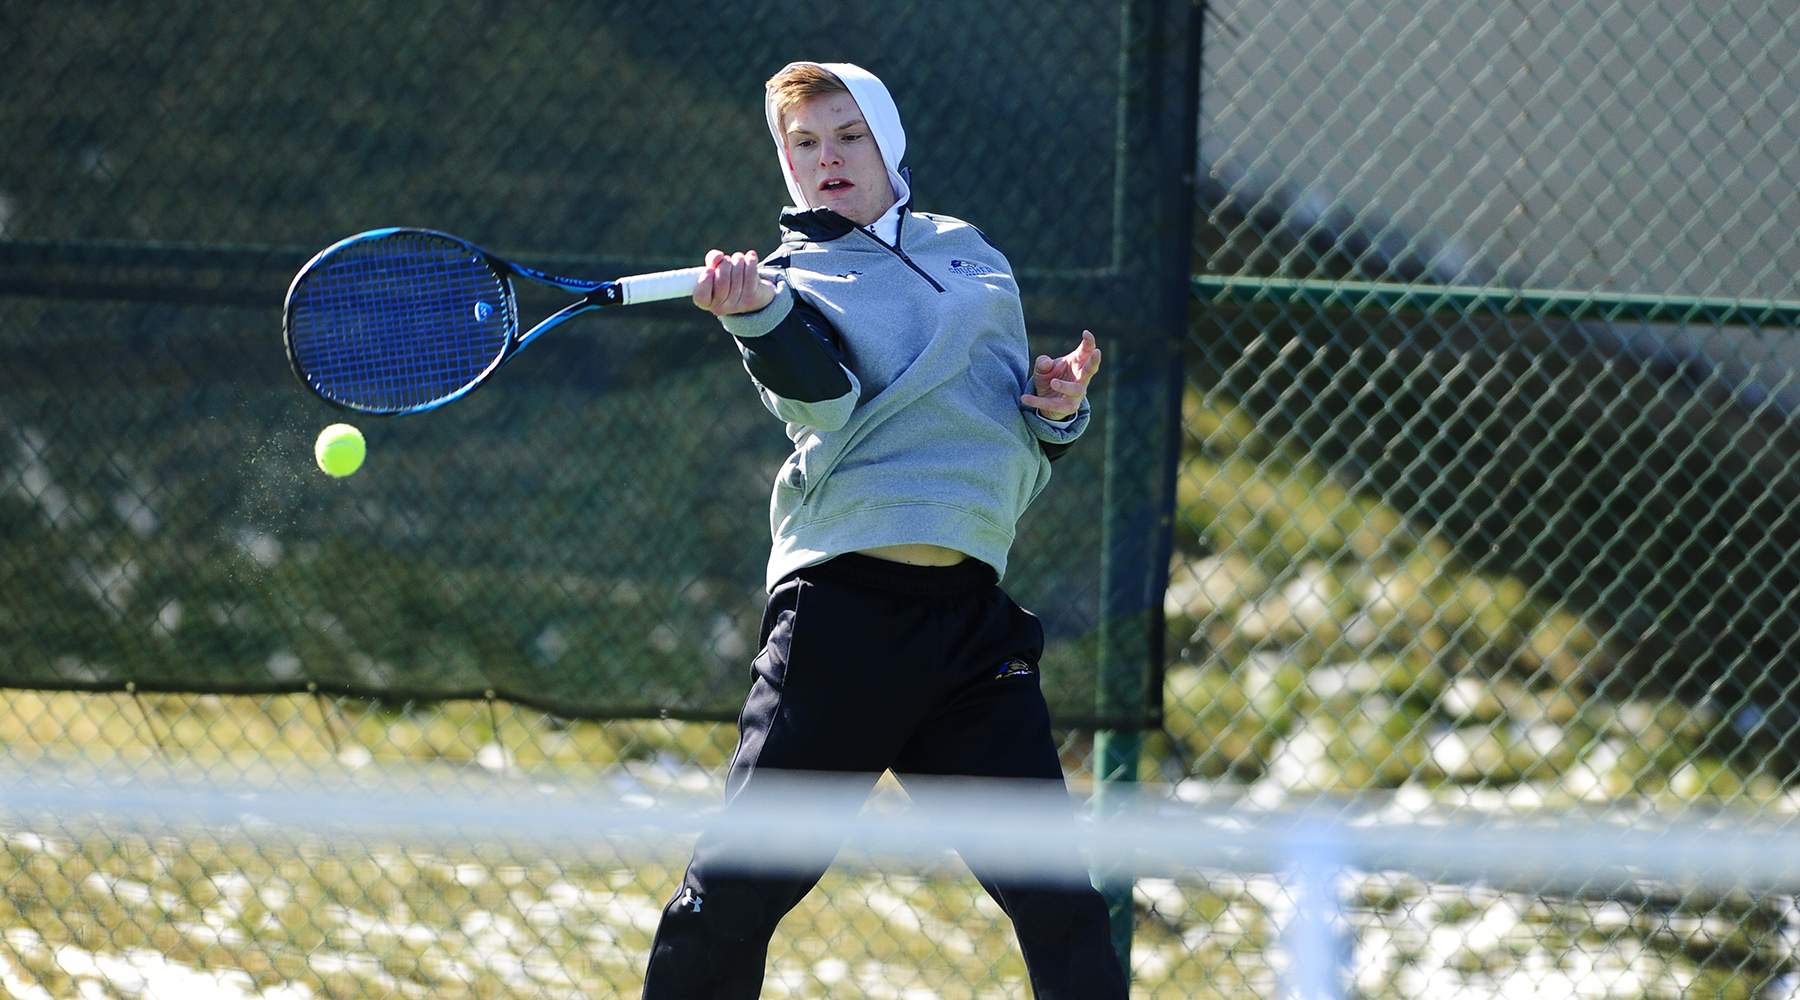 Men's Tennis Storms Past Juniata, 9-0, to Remain Unbeaten in Landmark